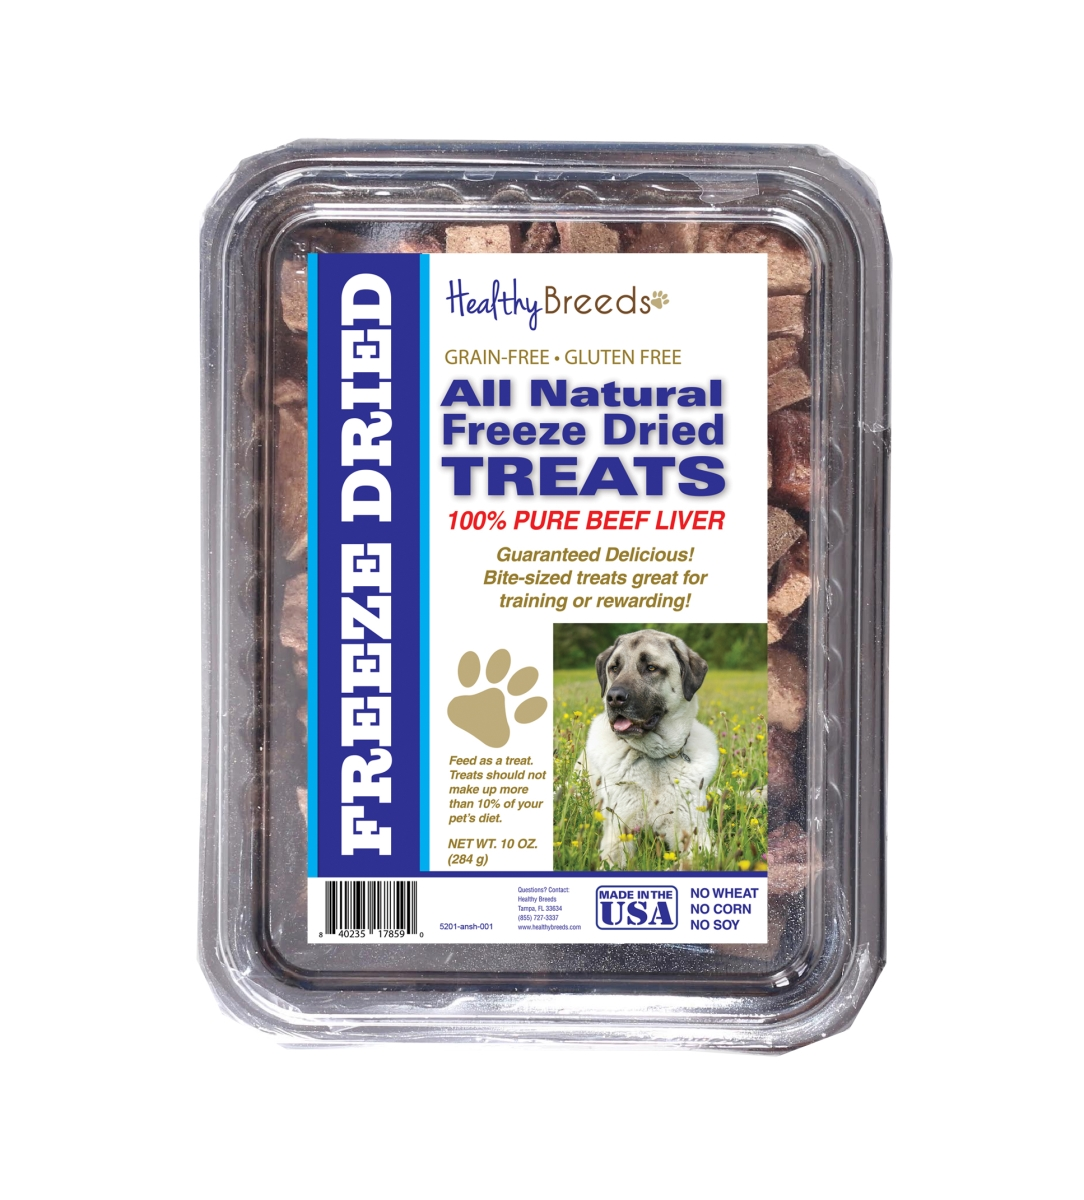 Healthy Breeds 840235178590 10 oz Anatolian Shepherd Dog All Natural Freeze Dried Treats Beef Liver